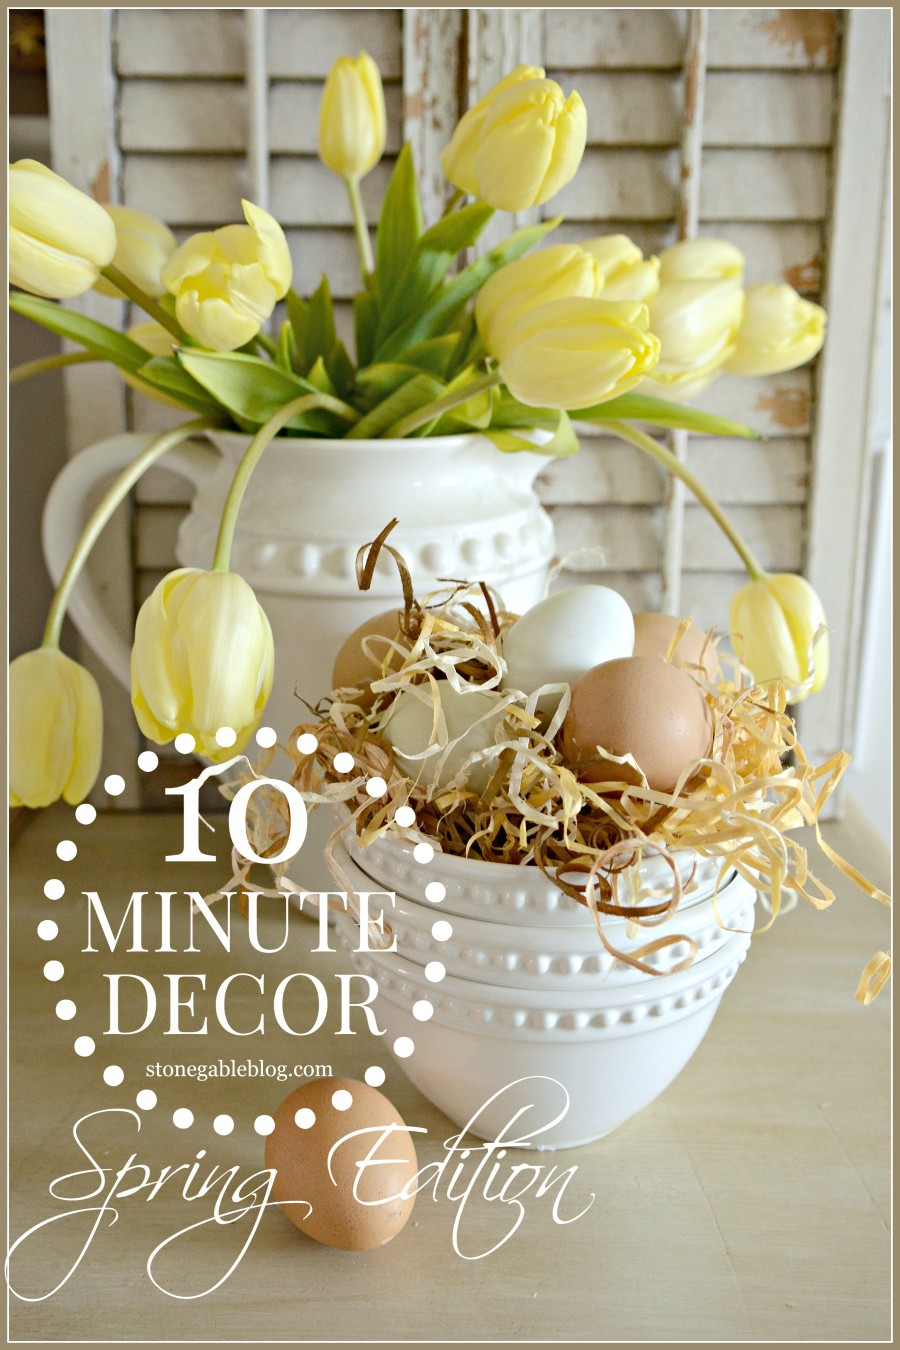 10 MINUTE DECOR-SPRING EDITION- decorating doesn't have to take a lot of time-stonegableblog.com